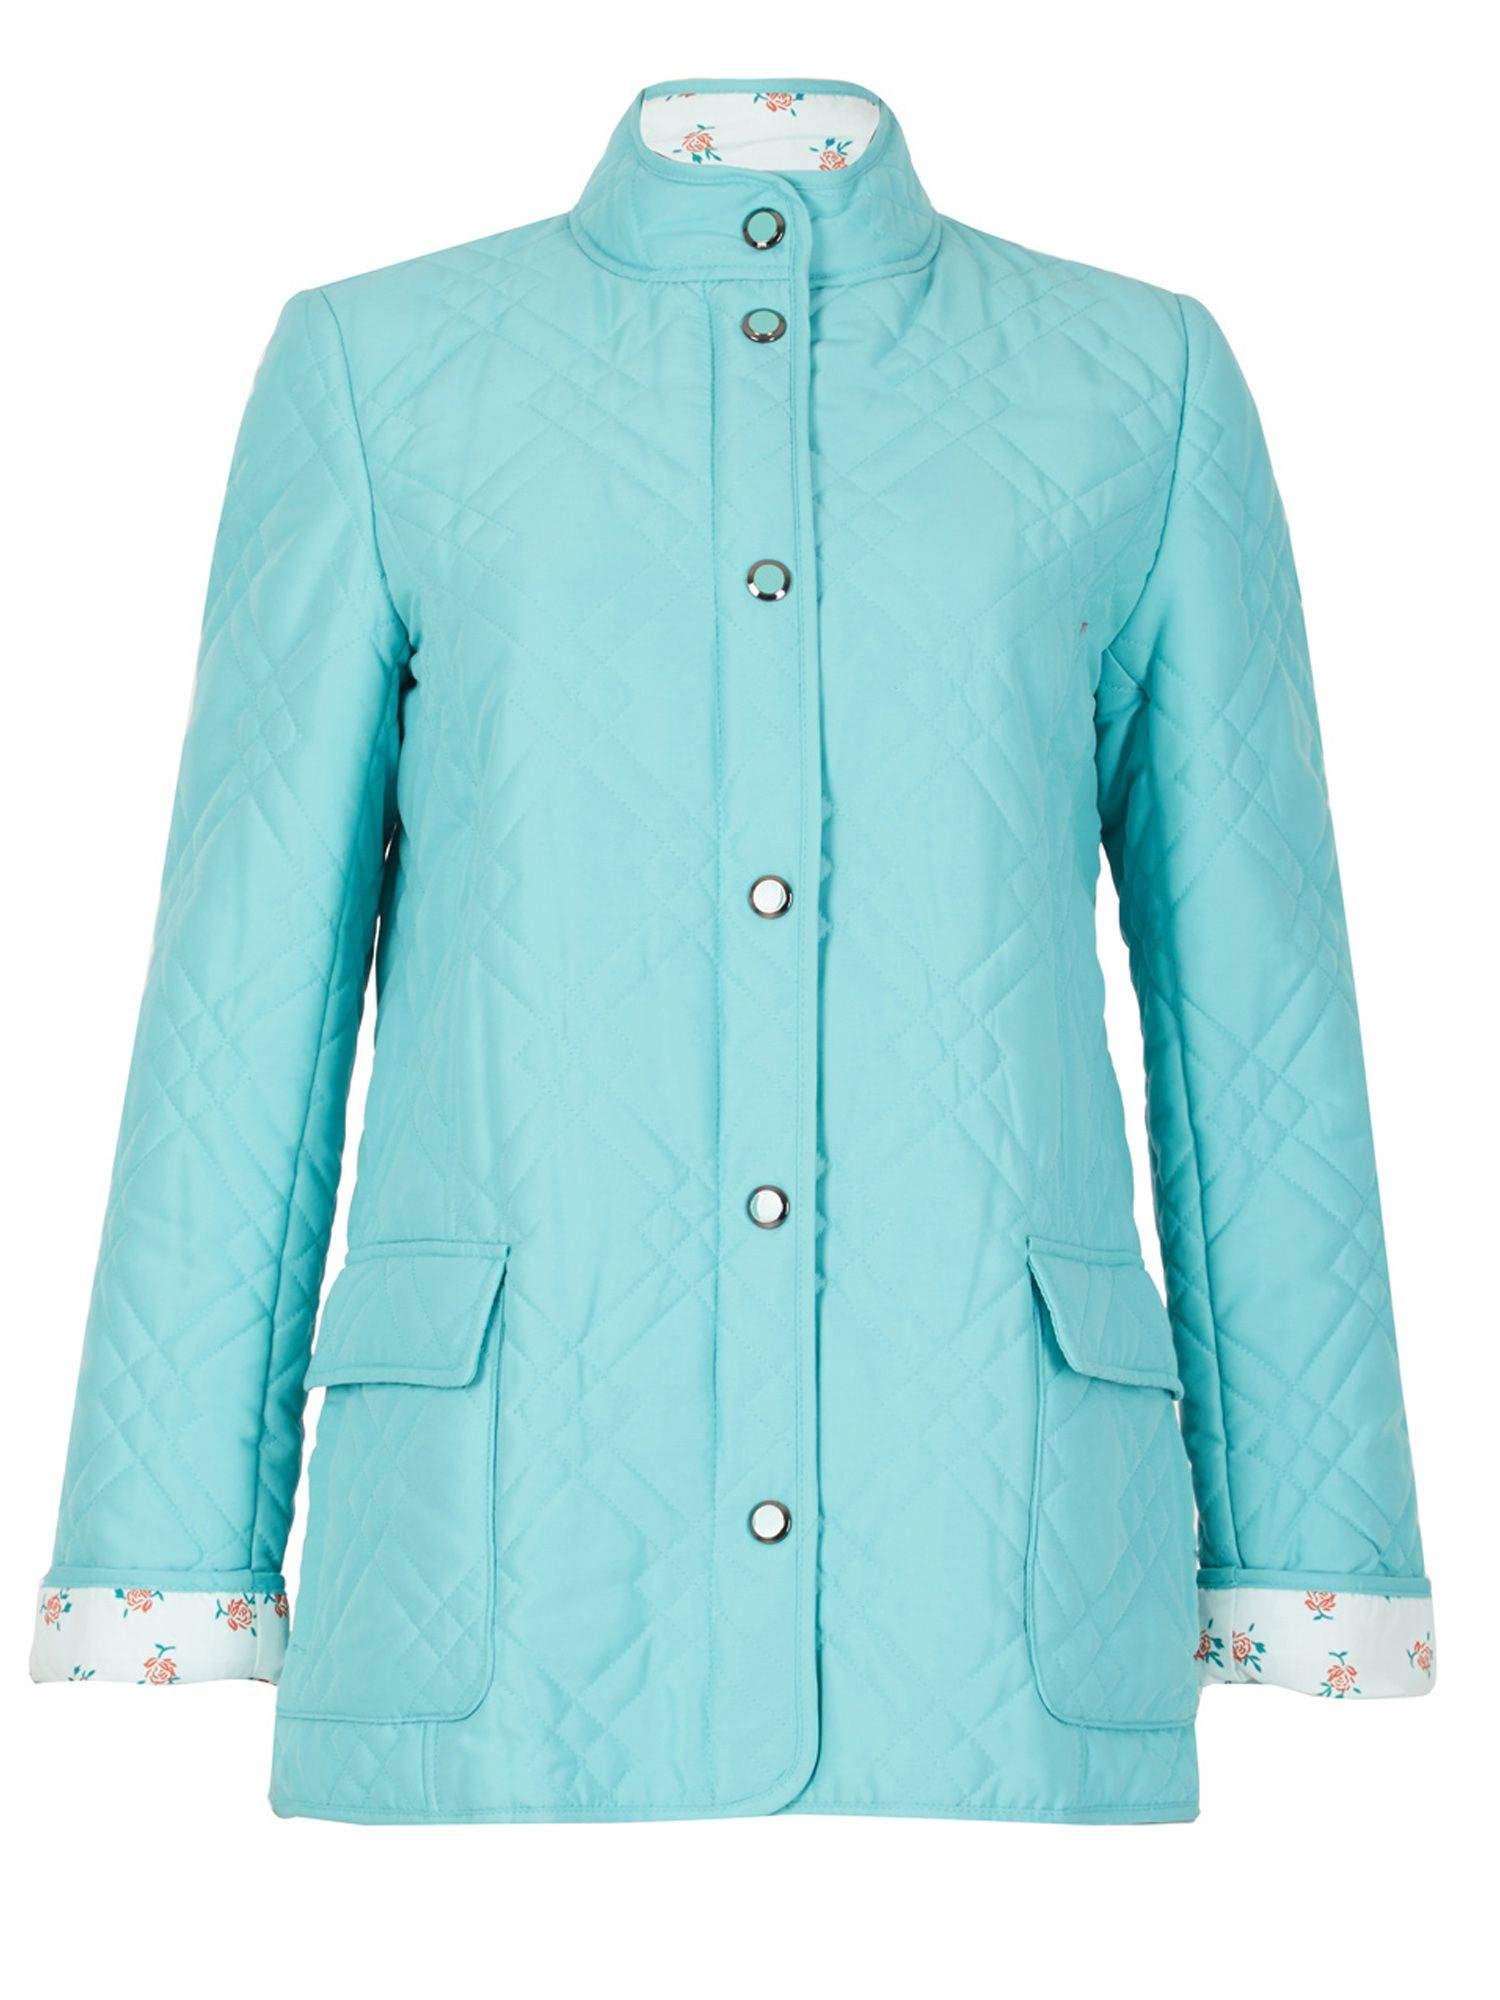 David Barry Light Weight Microfibre Quilted Jacket, Emerald